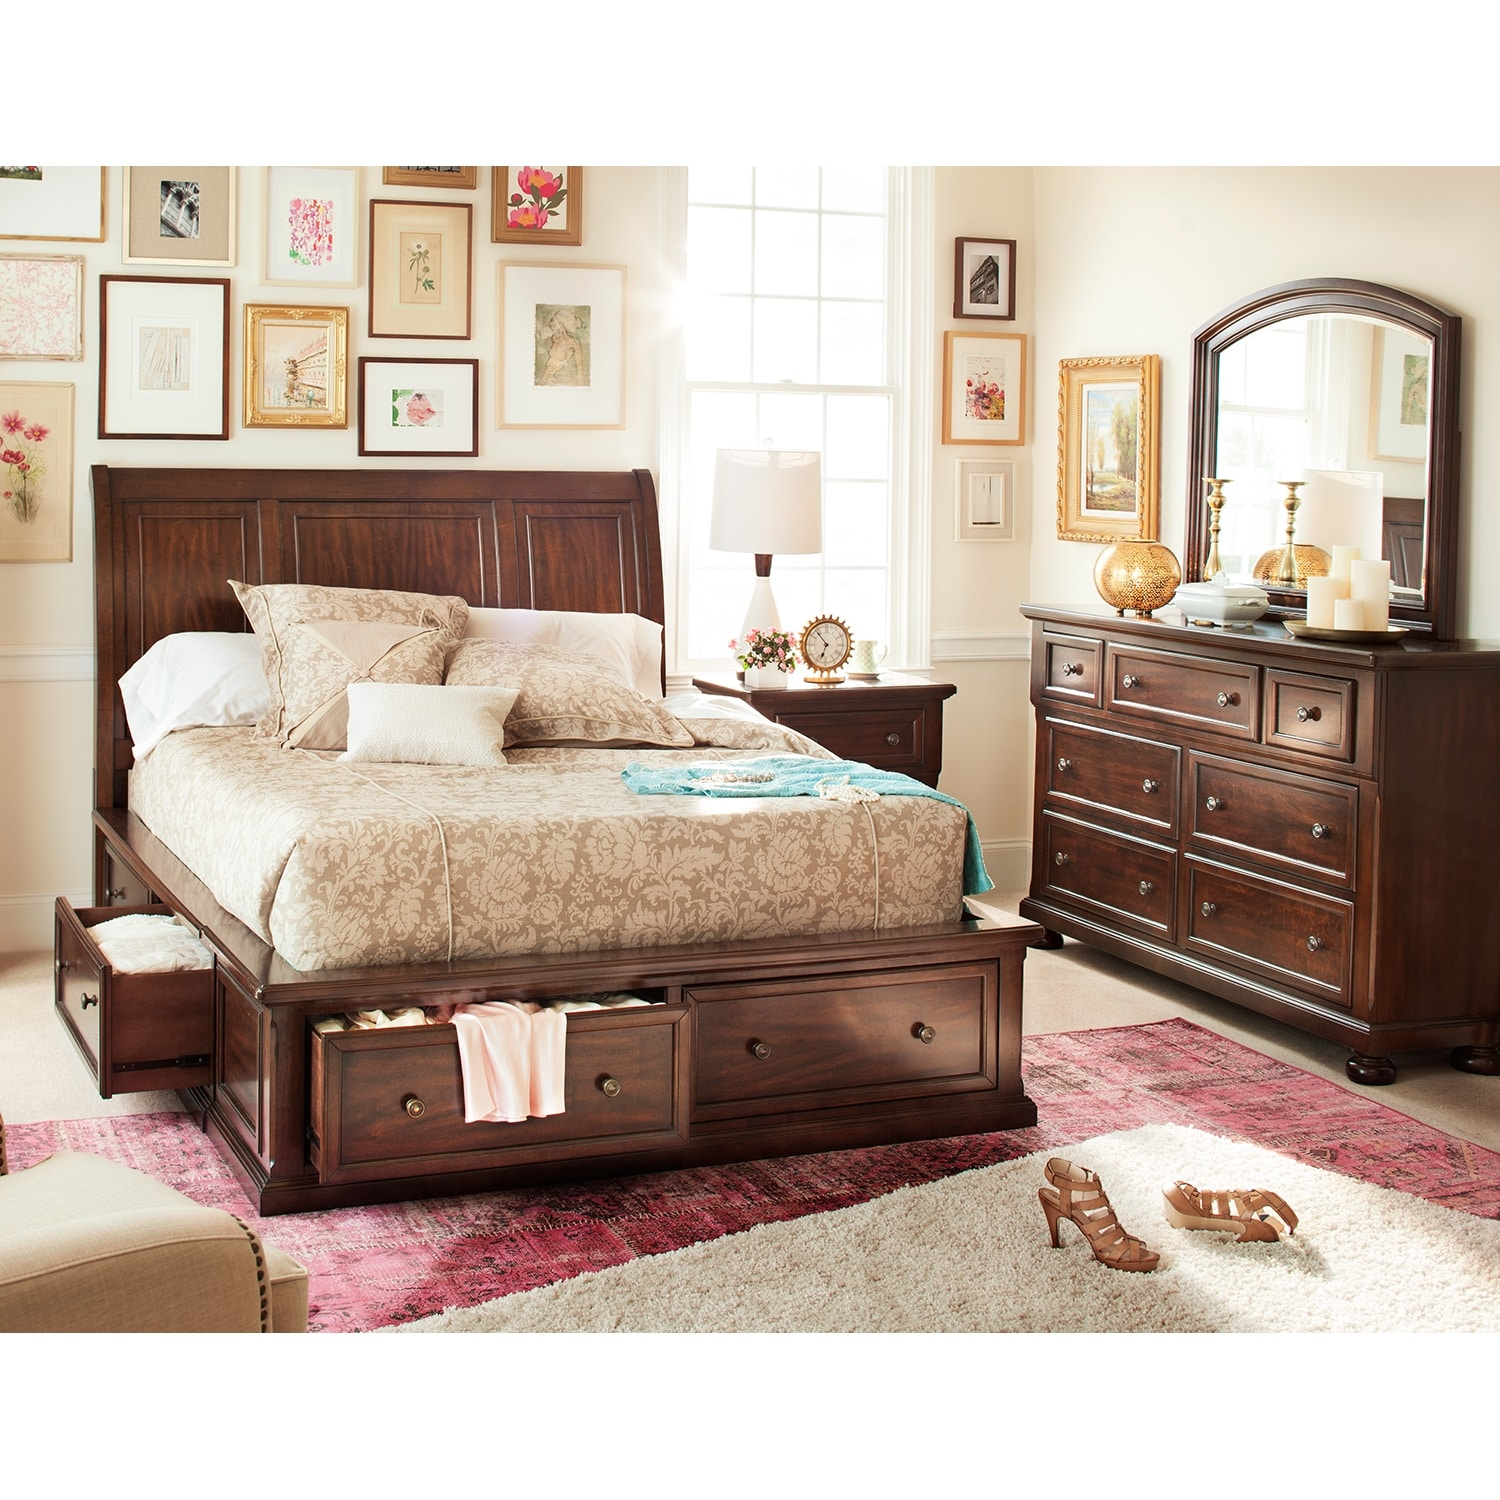 Hanover 5 Pc. King Storage Bedroom